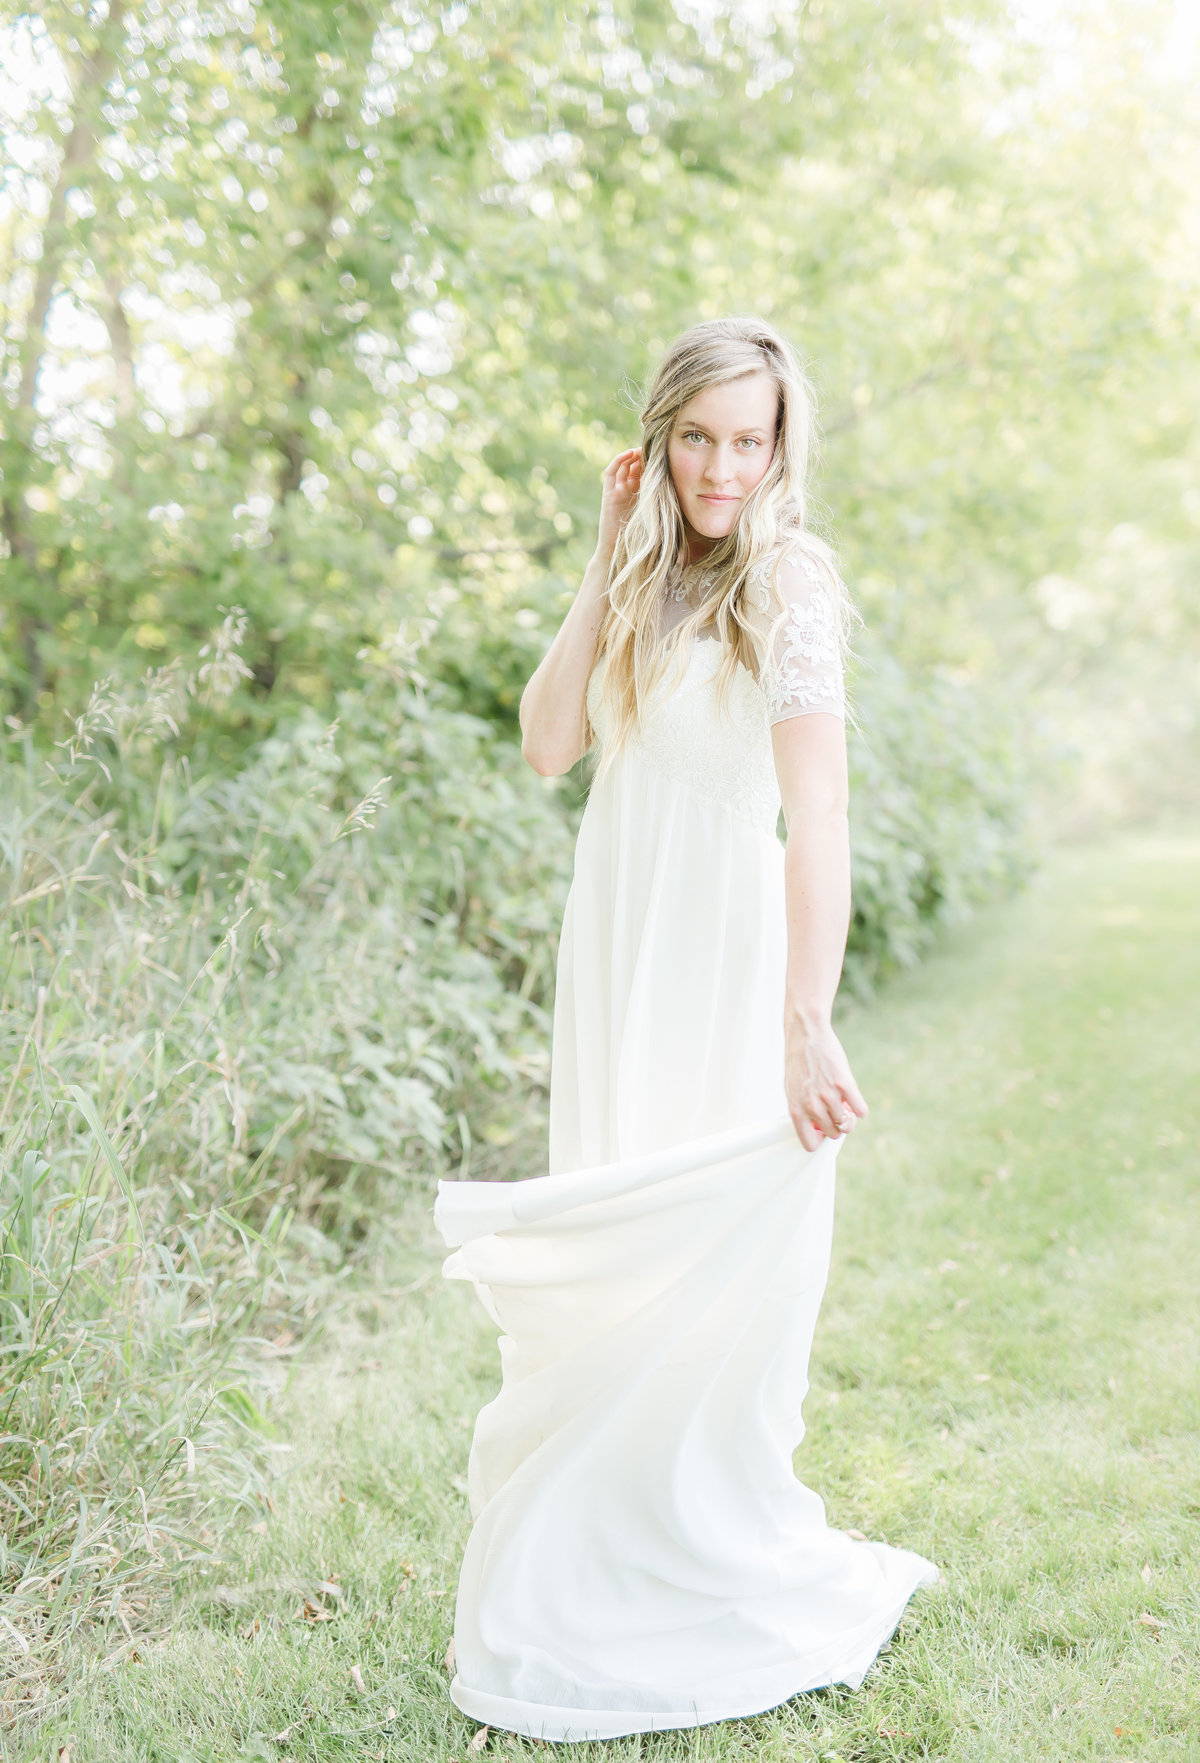 Kailey - Styled Shoot - New Edits-22